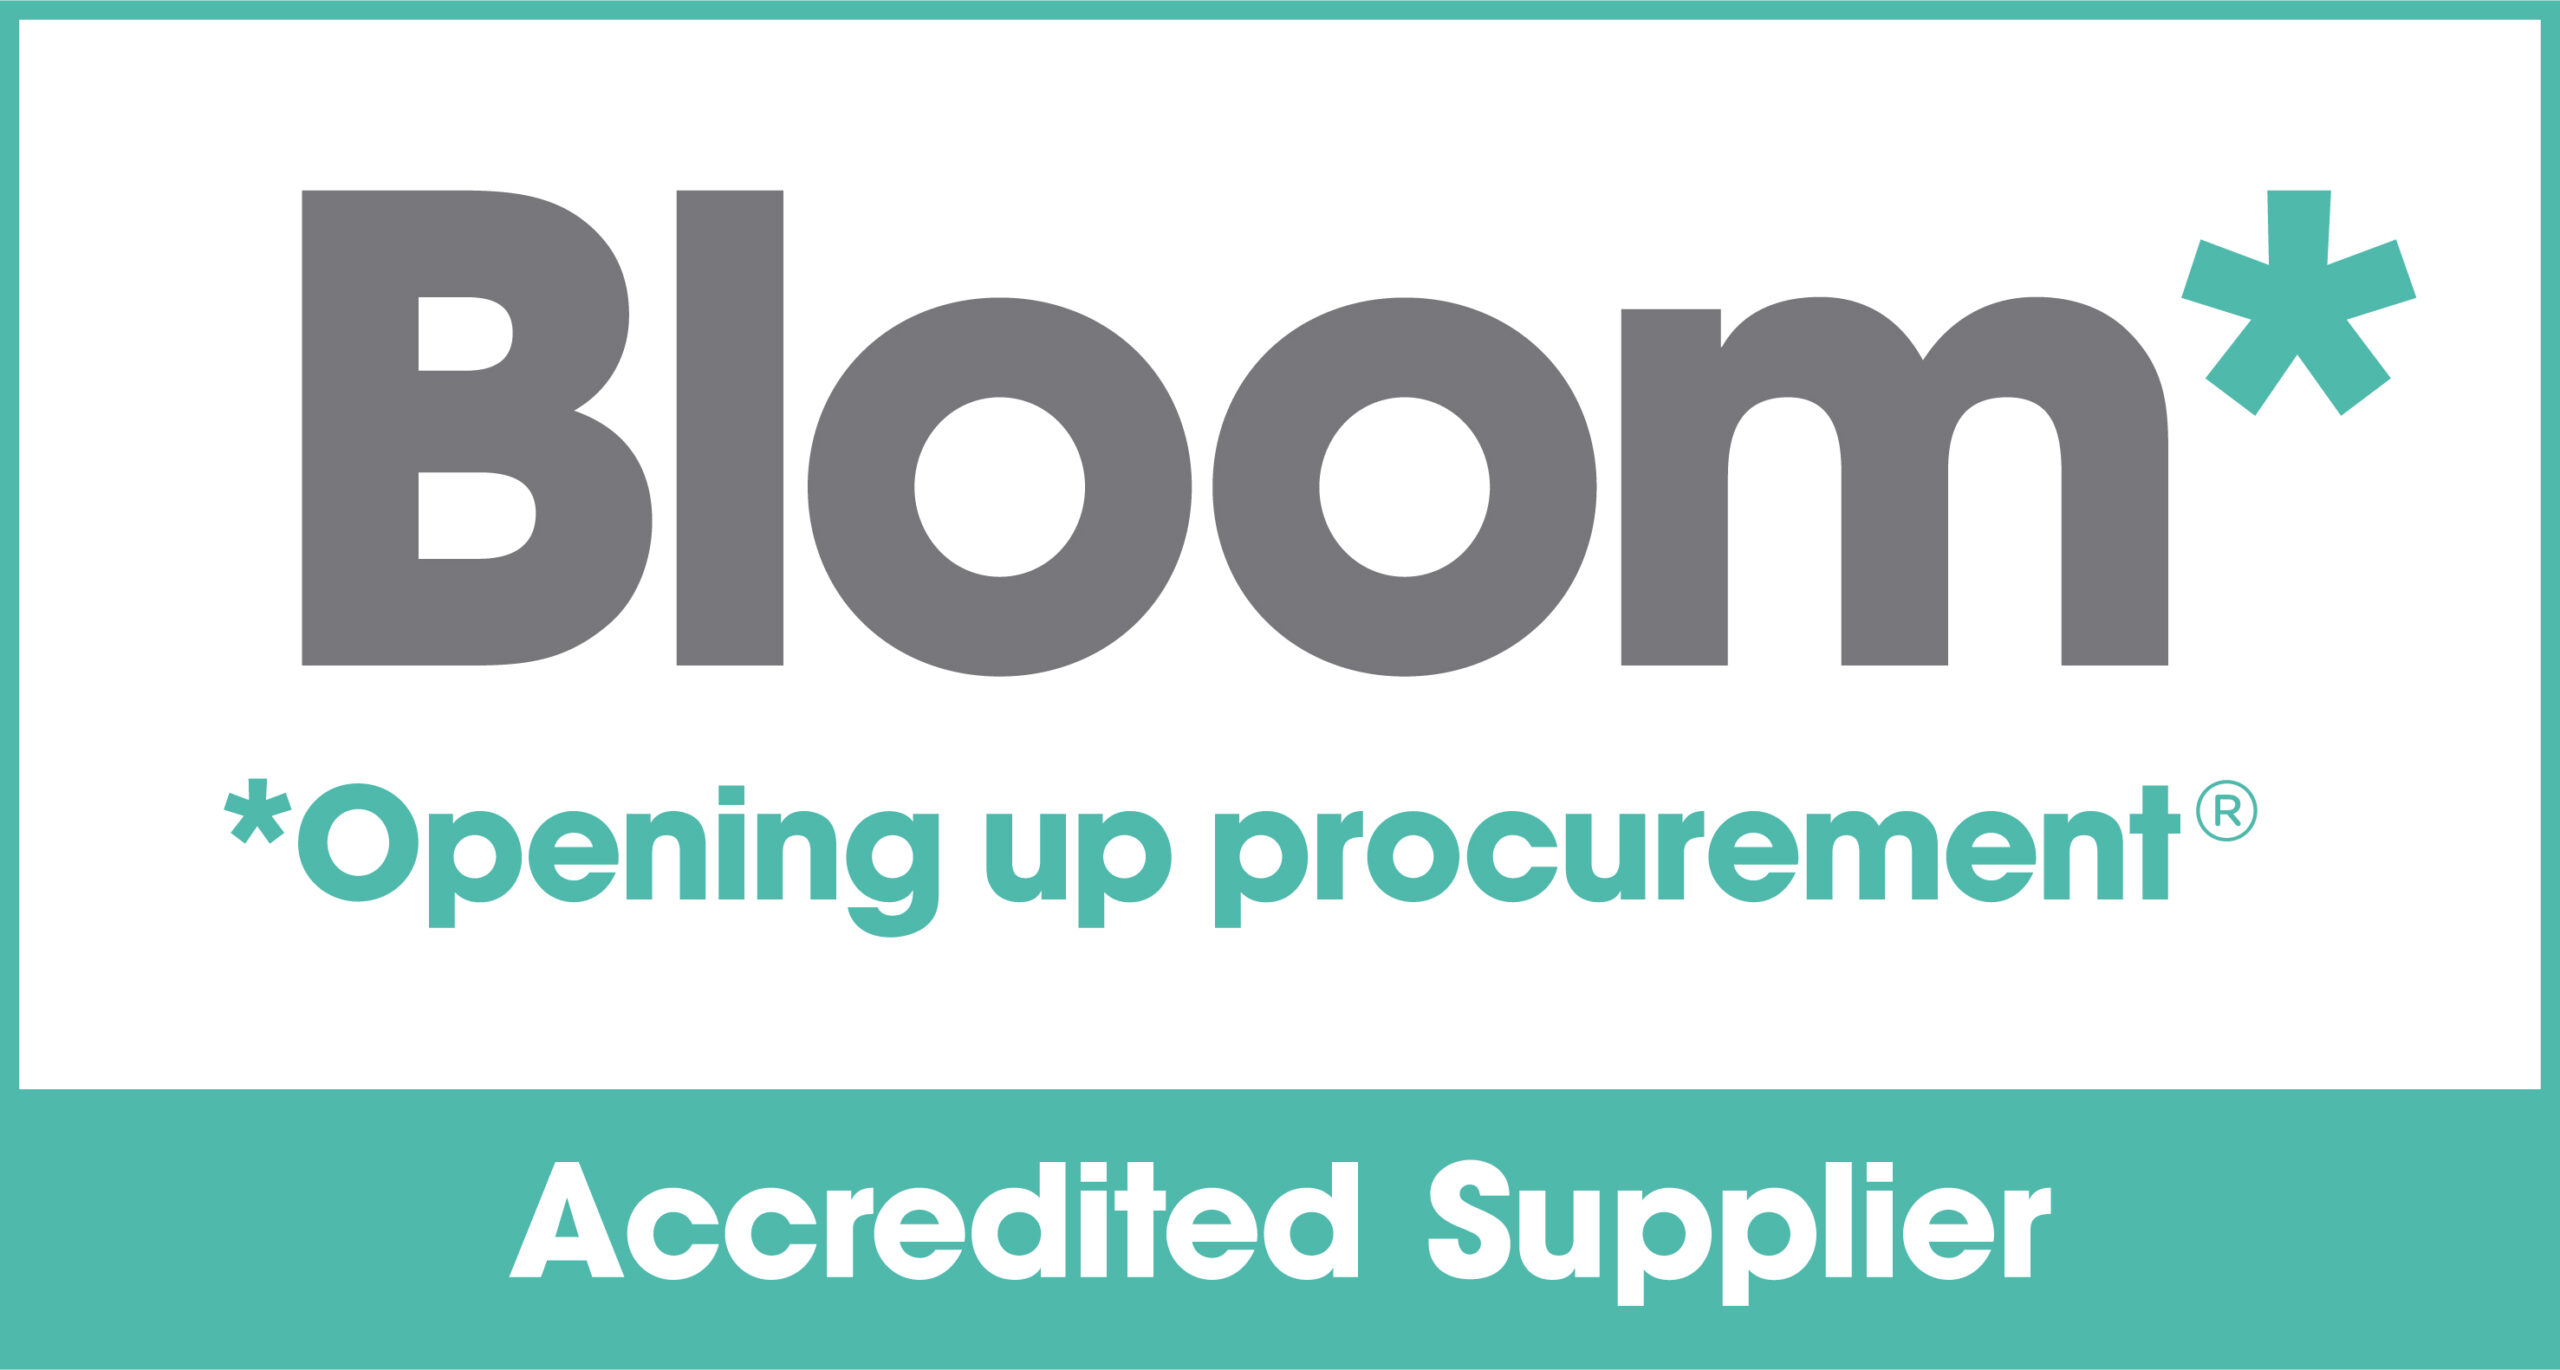 Shows the Bloom Accredited Supplier Logo